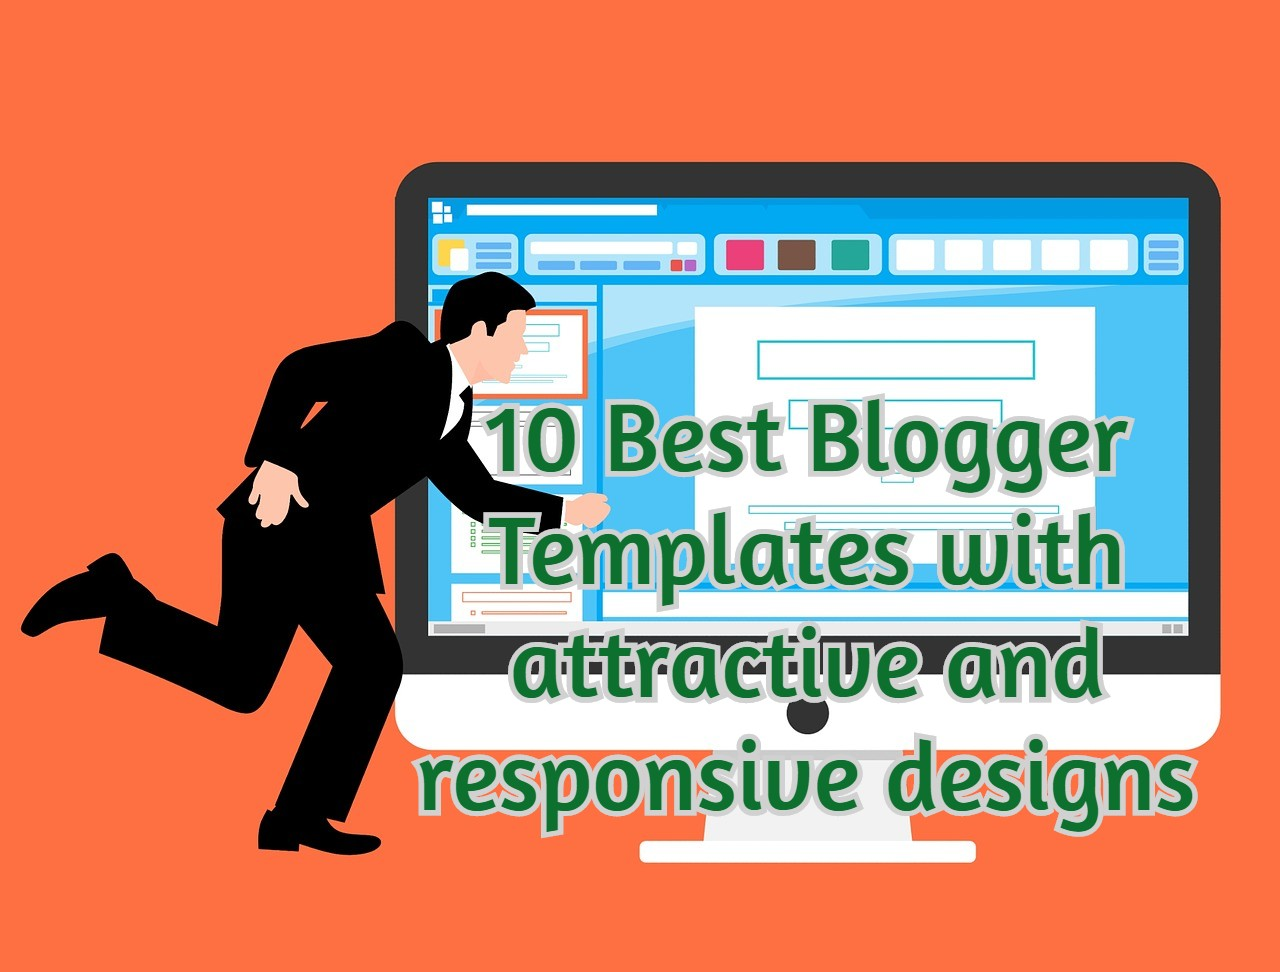 10 Best Blogger Templates with attractive and responsive designs